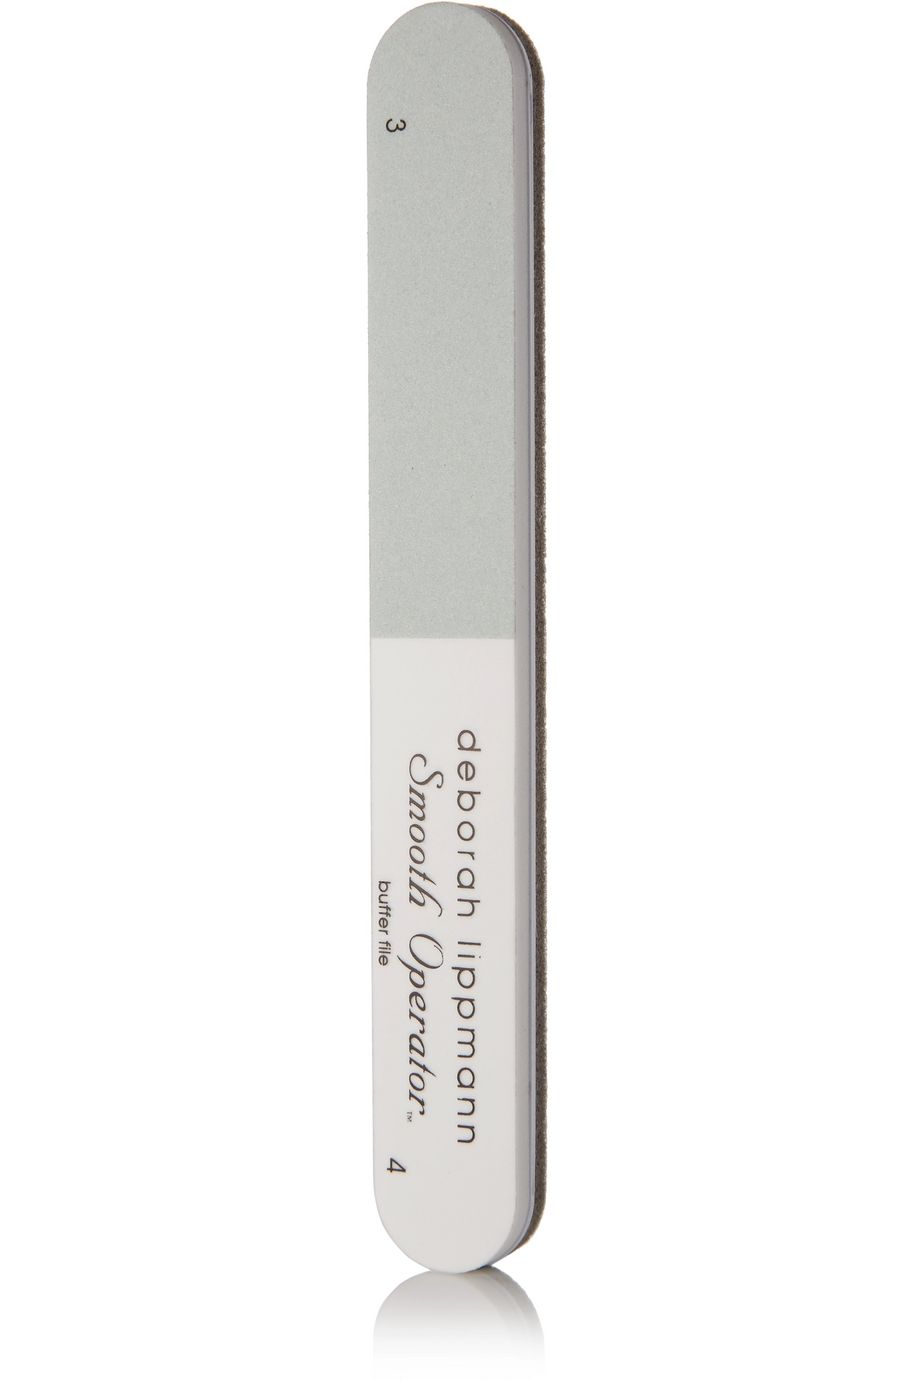 Deborah Lippmann Smooth Operator 4-Way Nail Buffer x 2